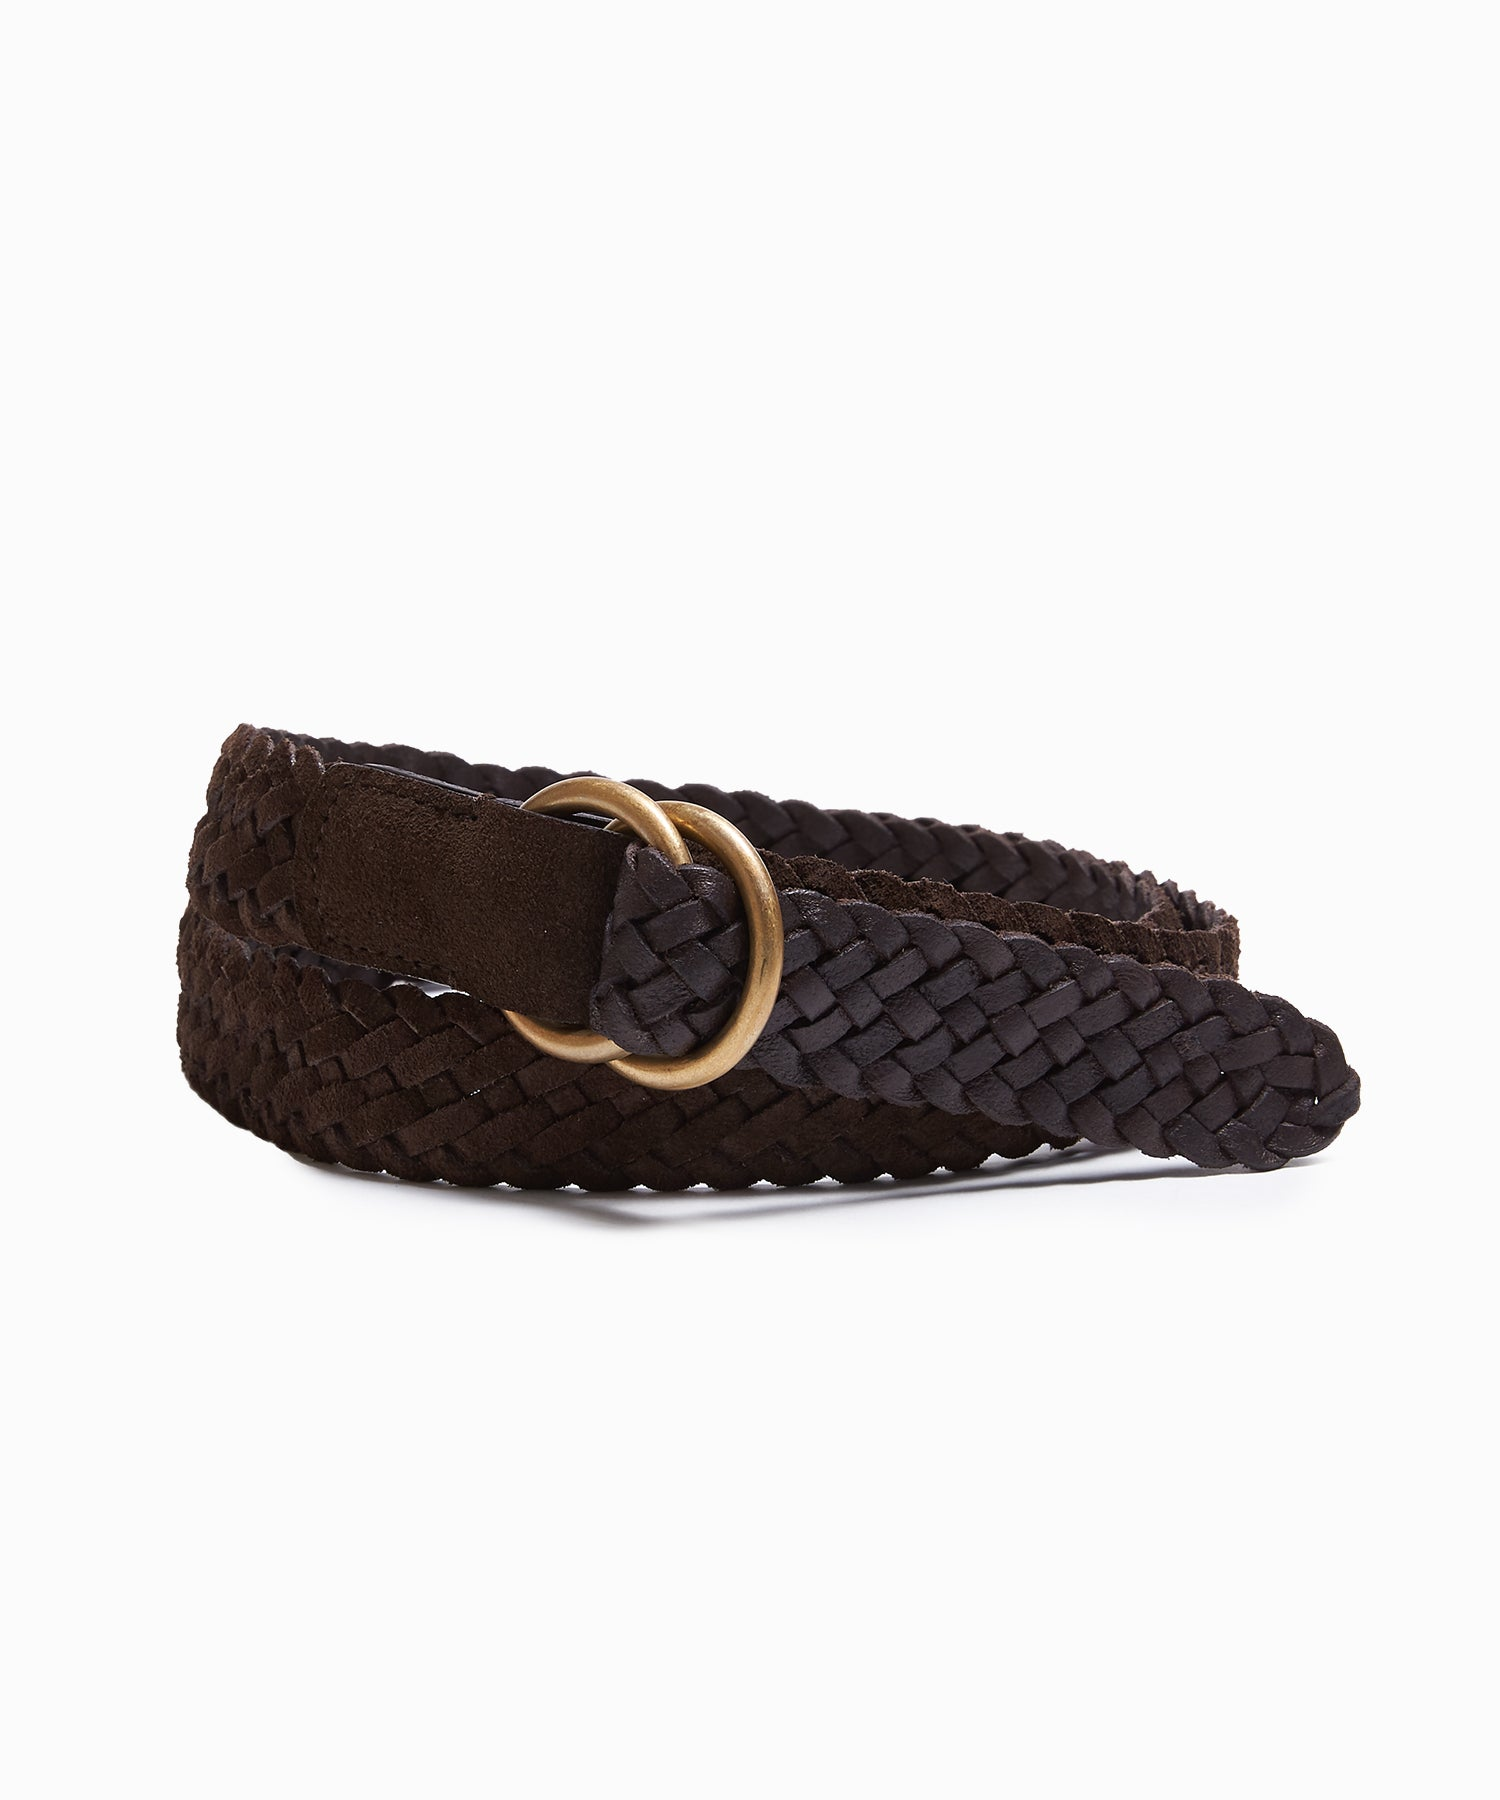 Anderson's Suede Braided D-Ring Belt in Dark Brown